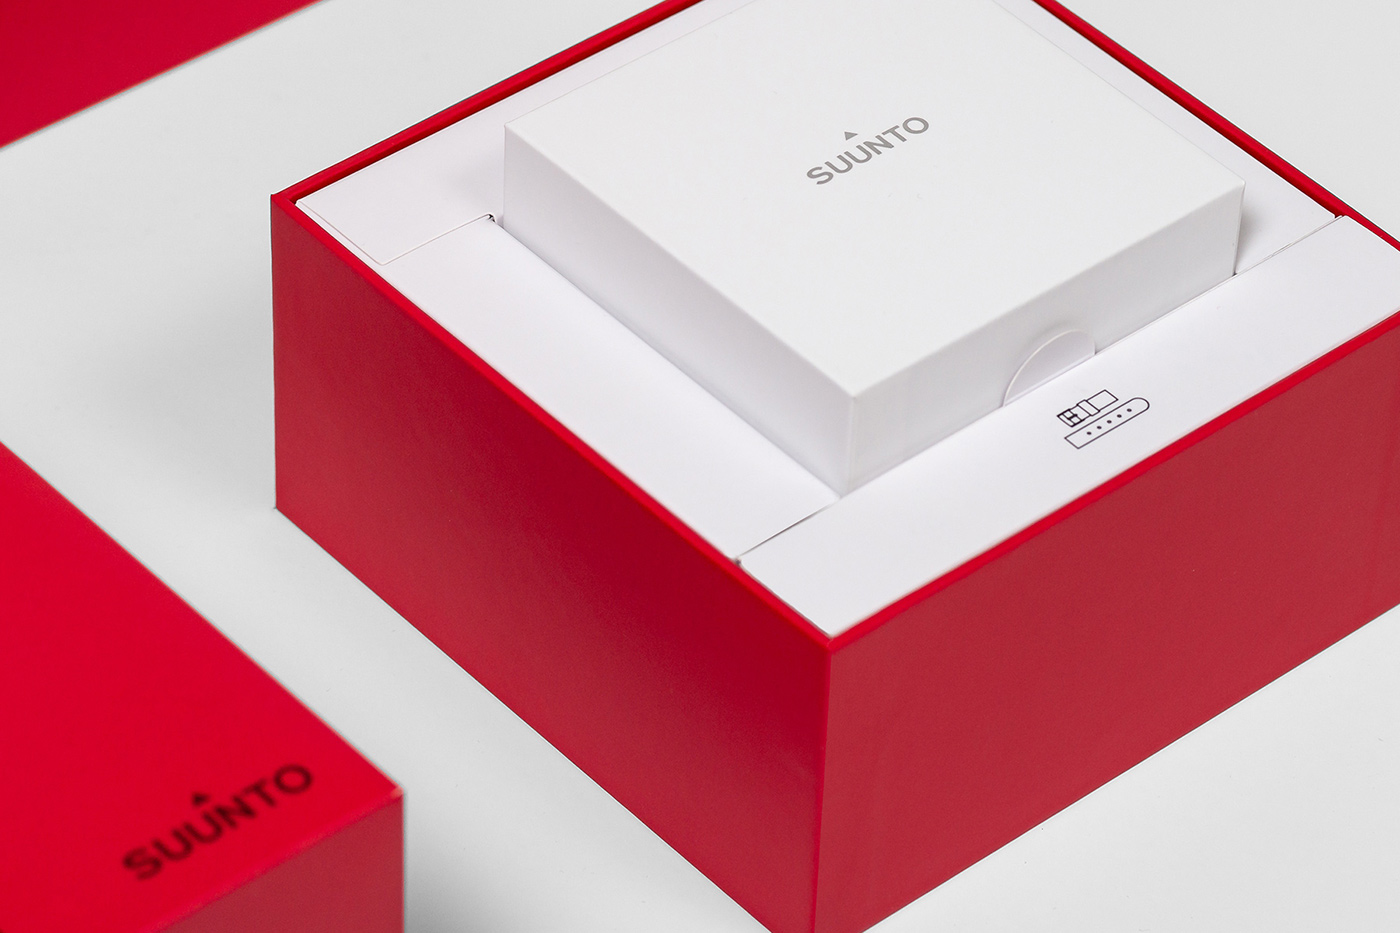 Suunto gift box packaging design